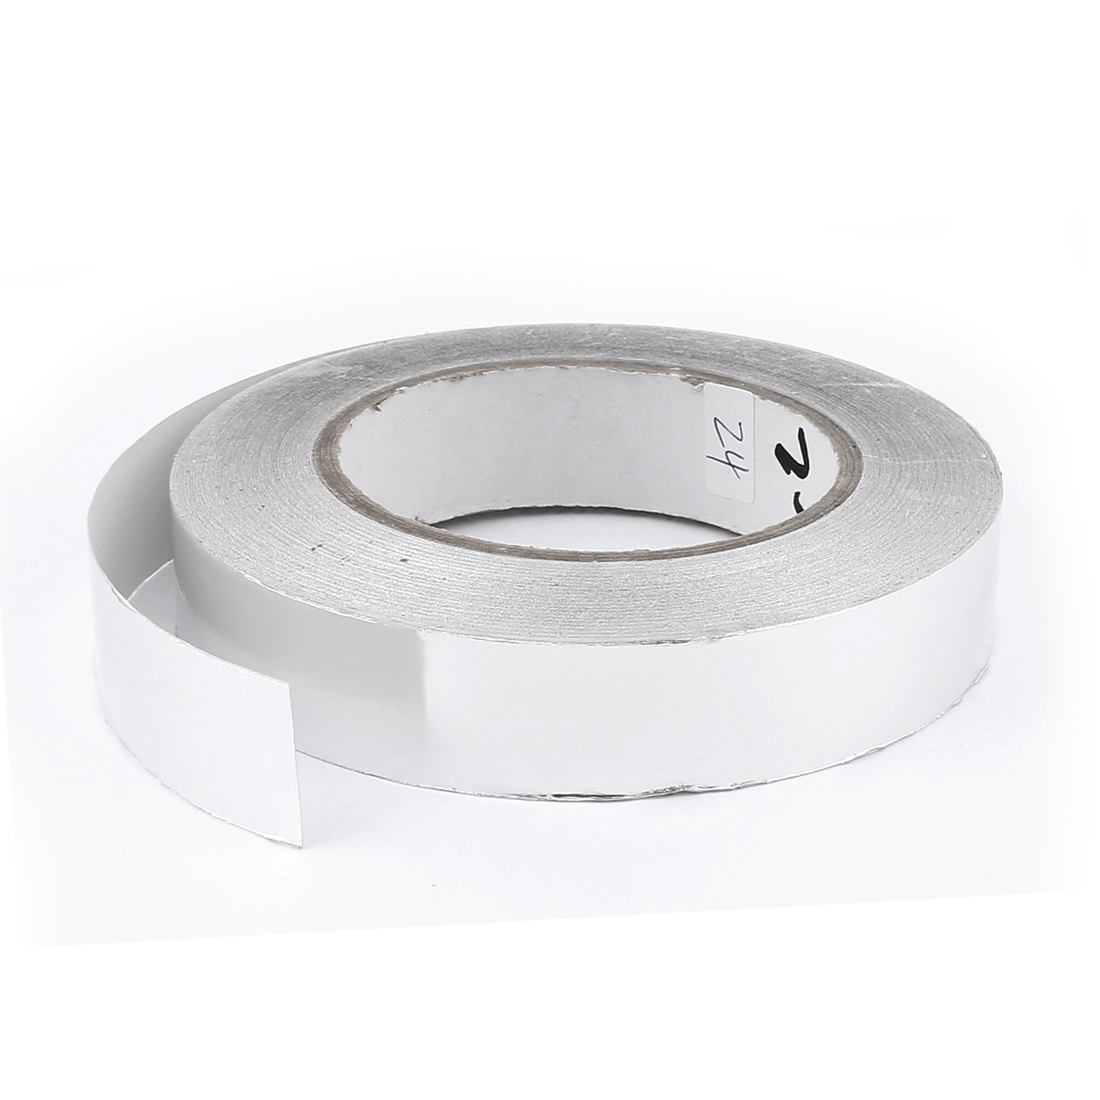 25mm x 50m Roll Aluminium Foil Heating Duct Adhesive Sealing Tape